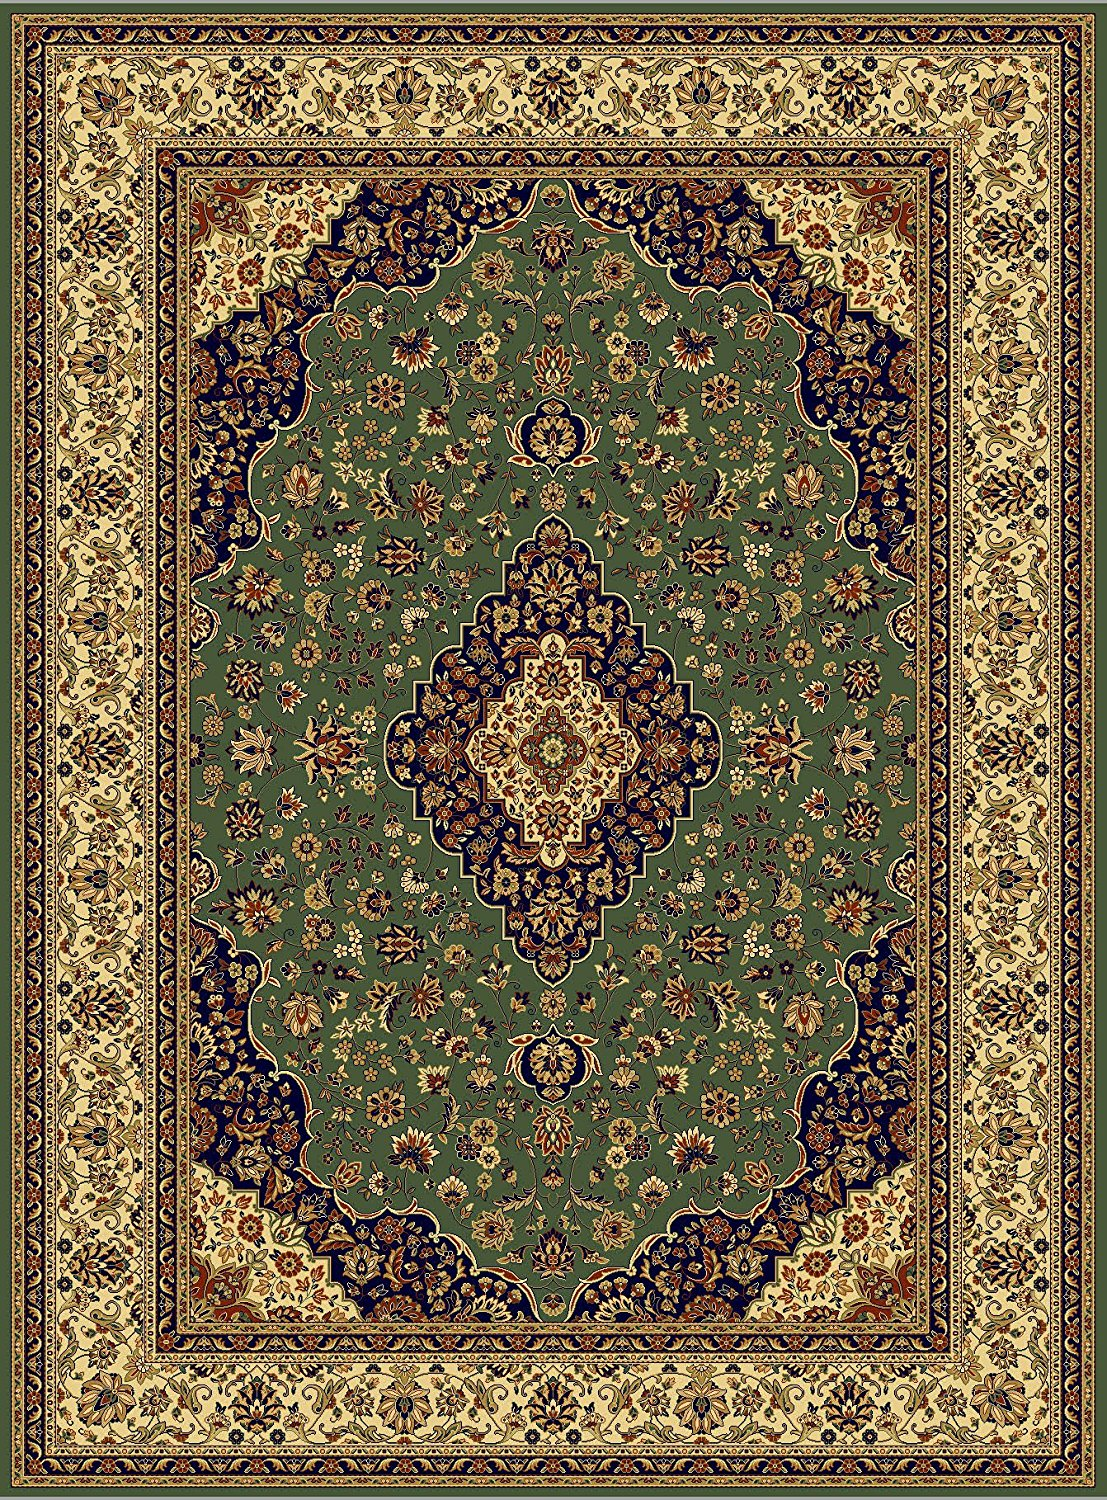 Cheap Black And Green Area Rugs Find Black And Green Area Rugs